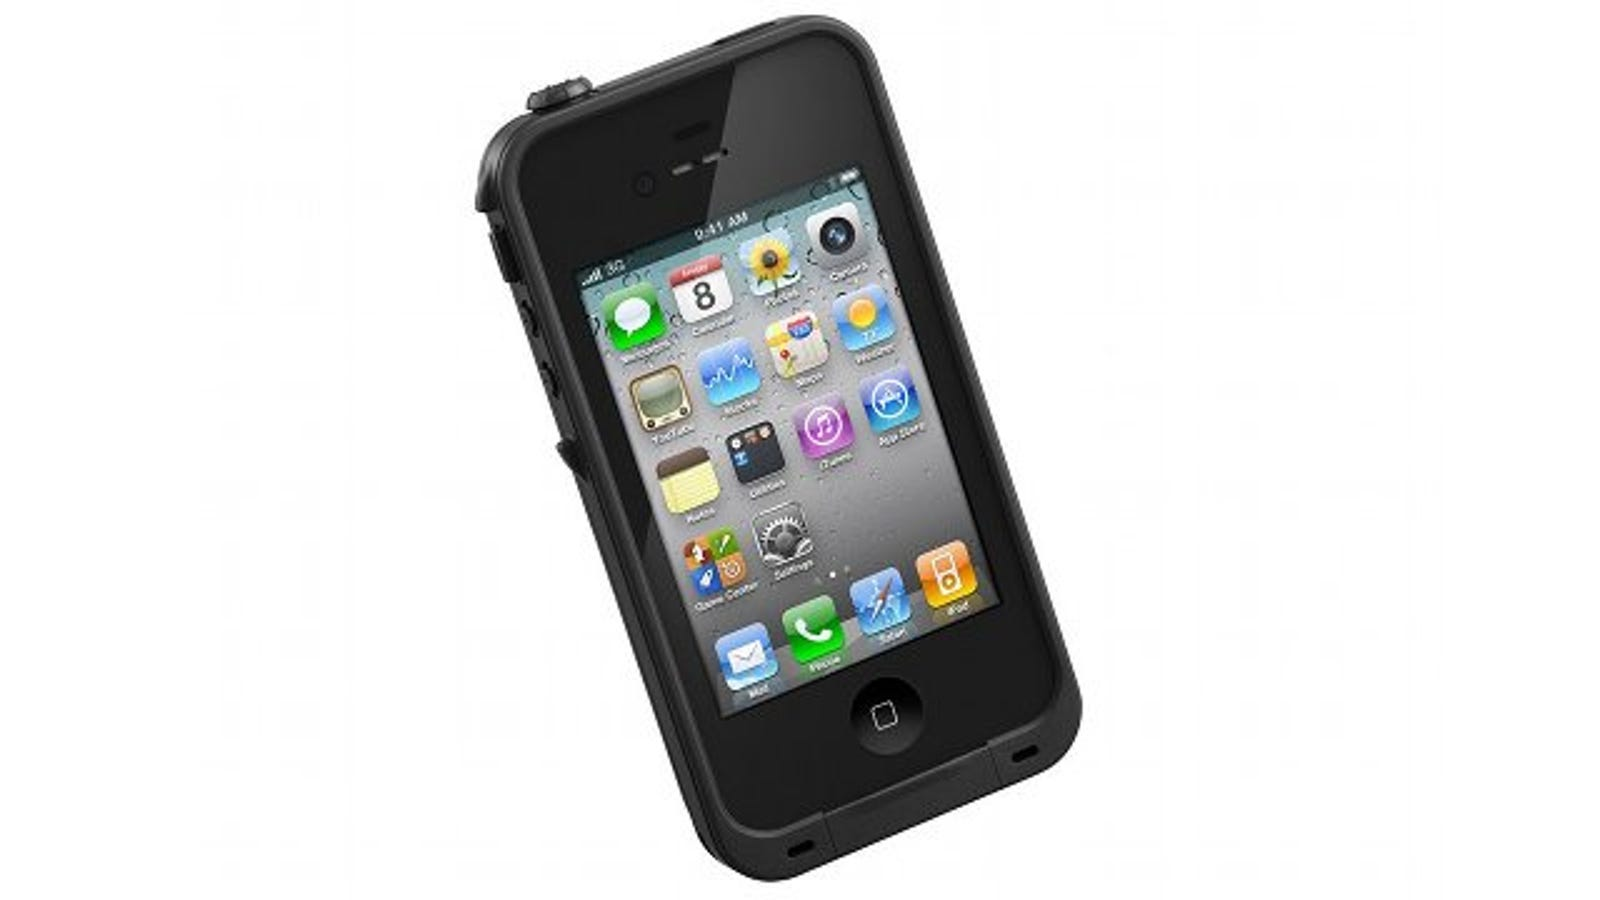 lifeproof case for iphone 4s the waterproof dustproof shock proof iphone 4s 7126